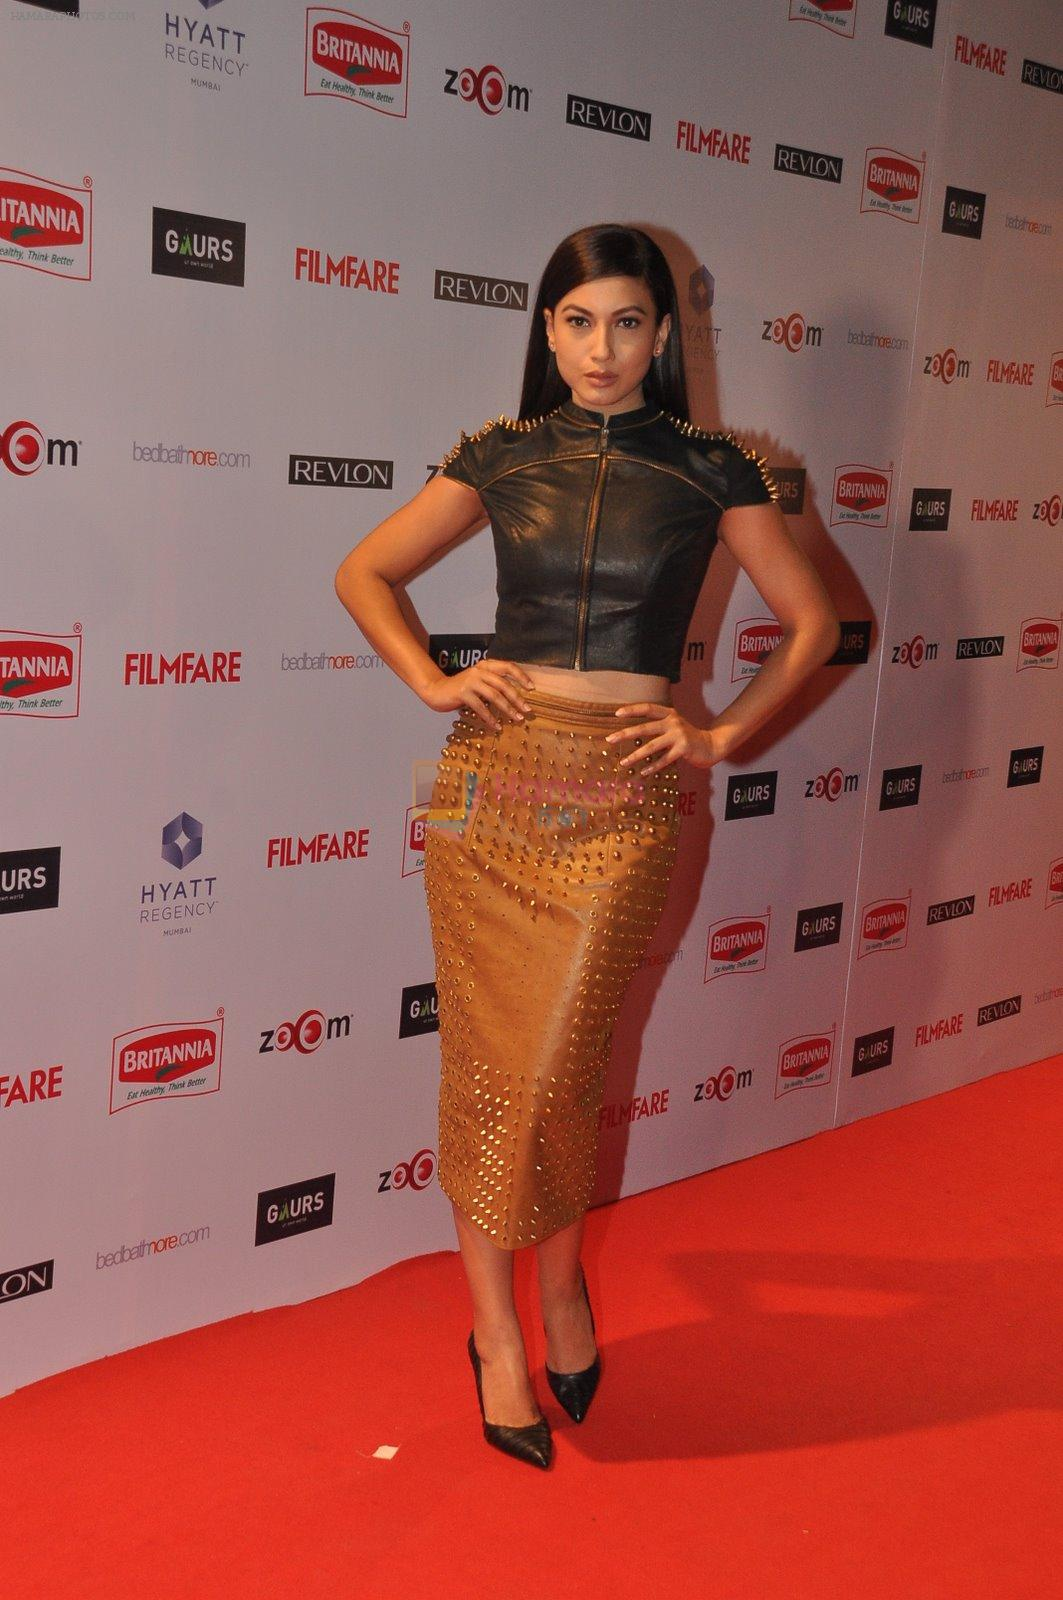 Gauhar Khan at Filmfare Nominations bash in Hyatt Regency, Mumbai on 22nd Jan 2015